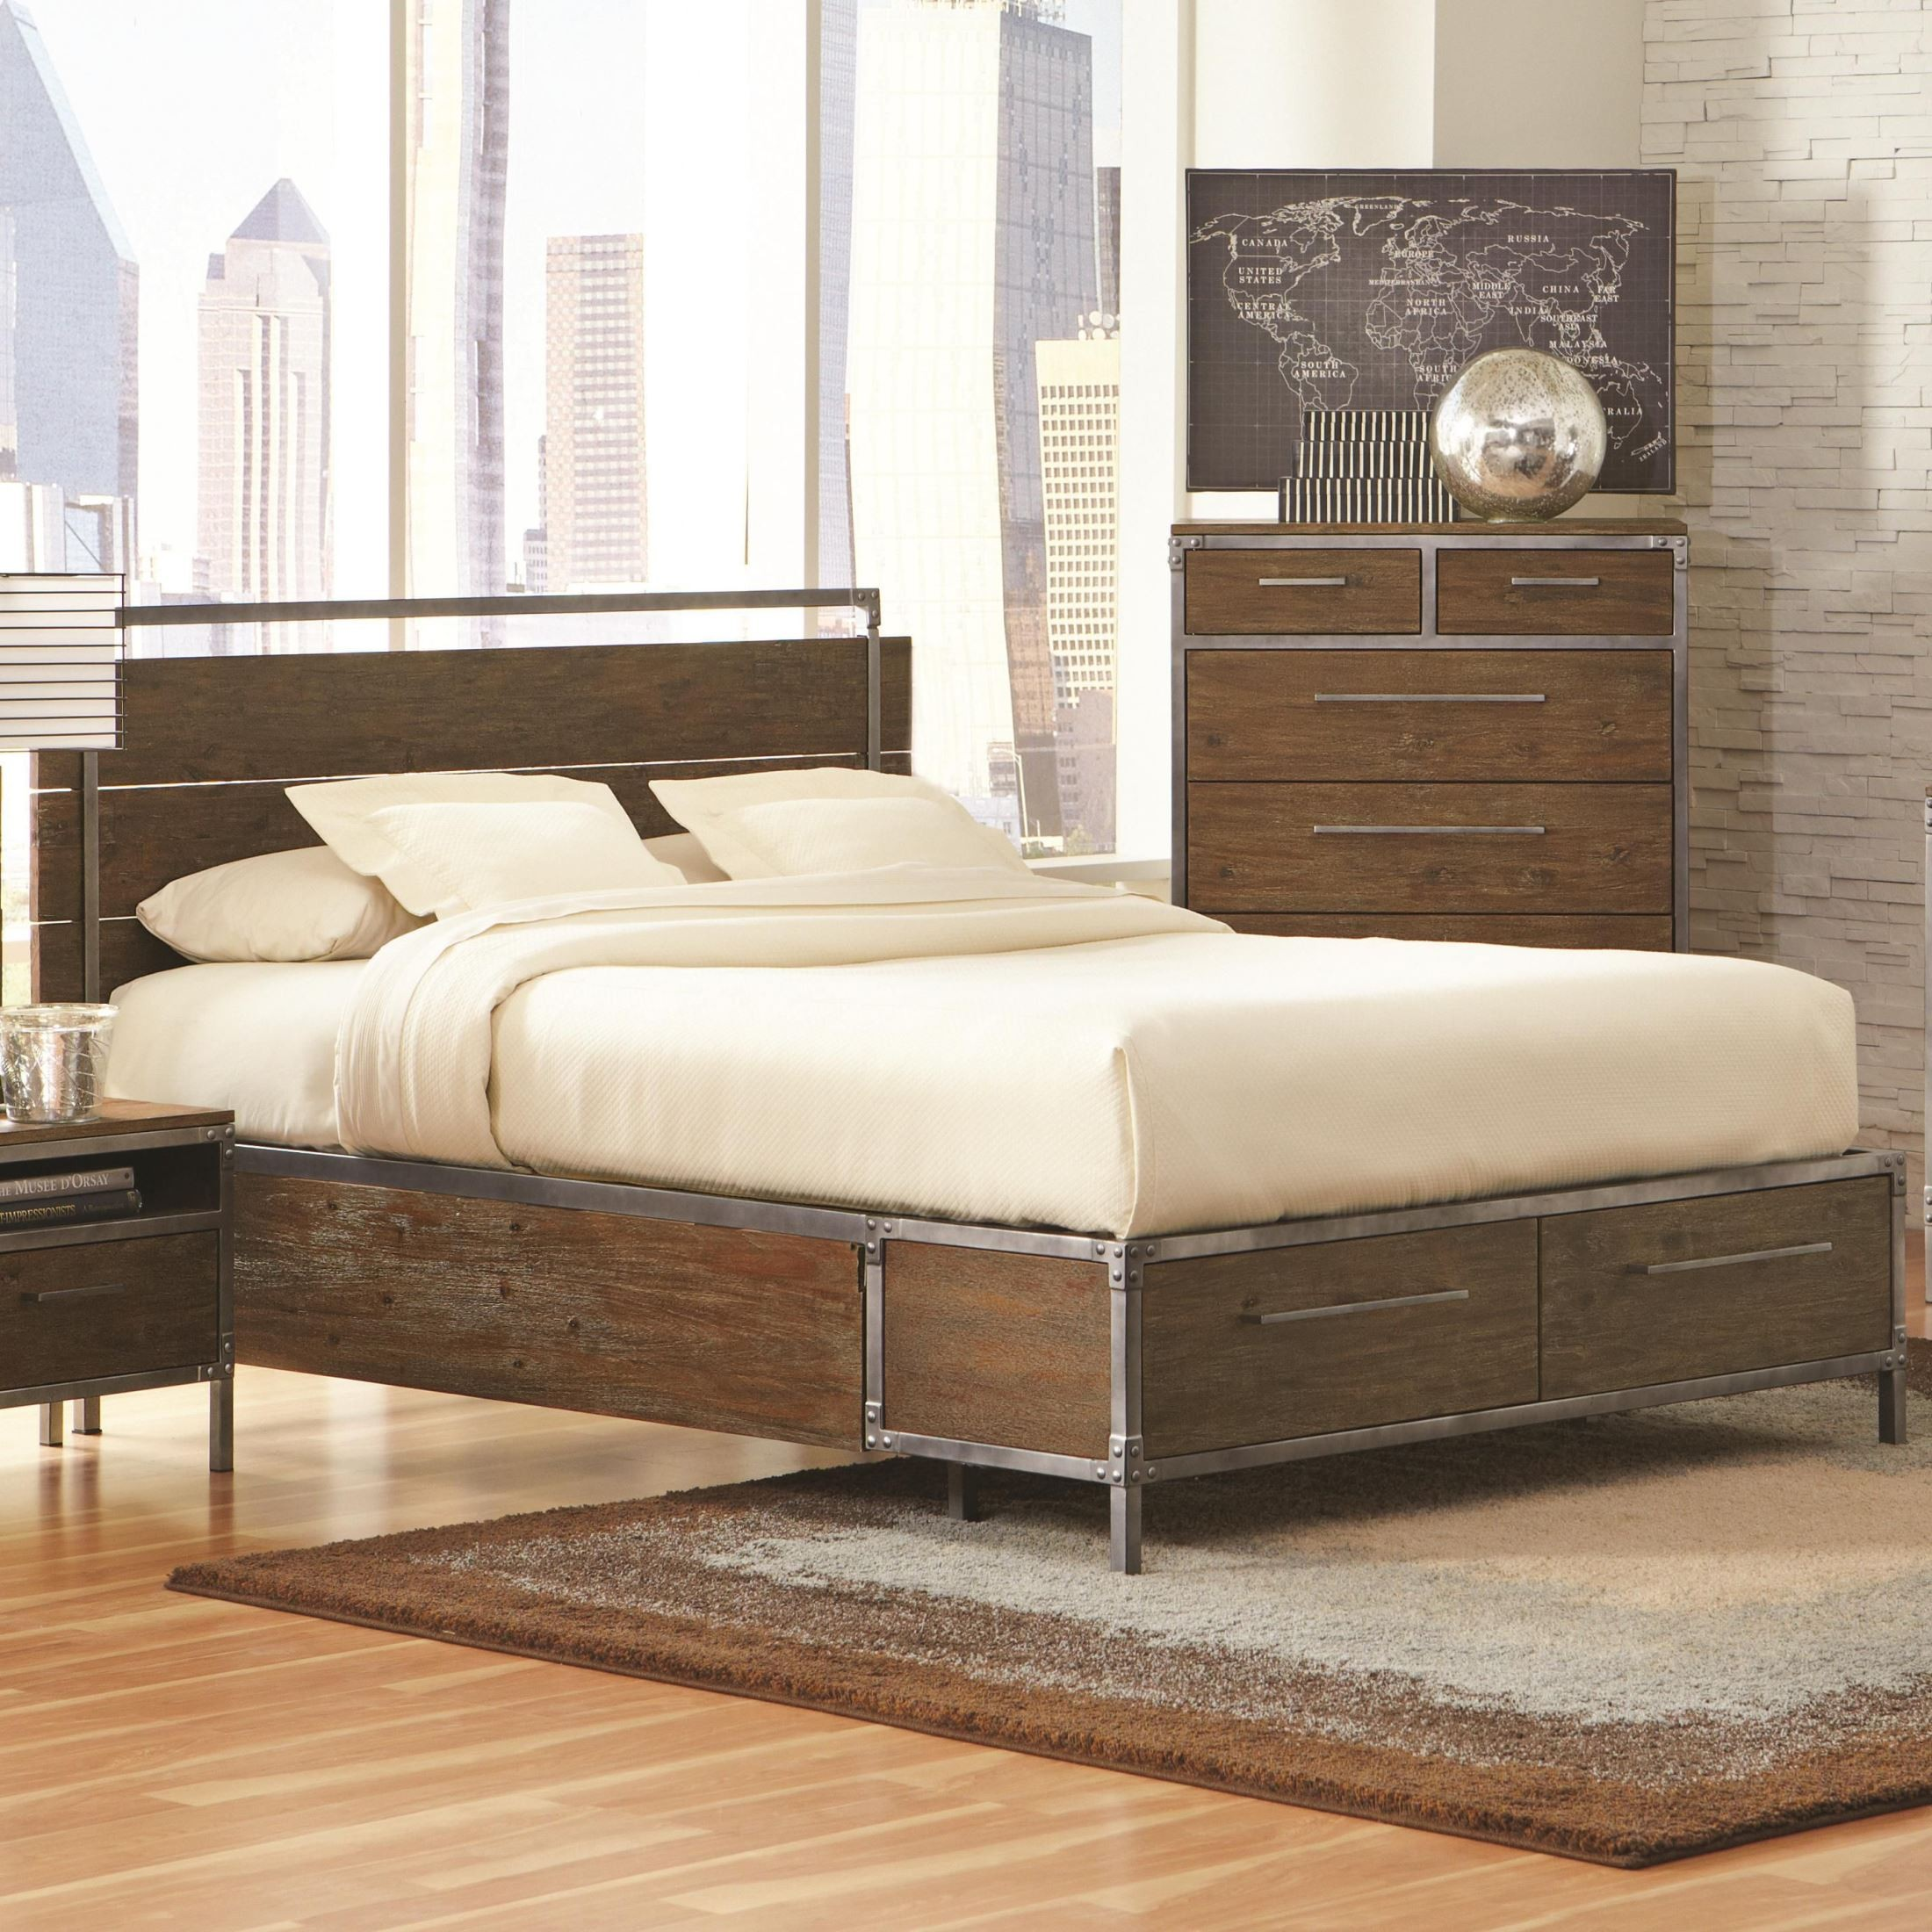 two legacy complete by bedroom storage sets w with low queen furniture classic drawers platform products bed or profile